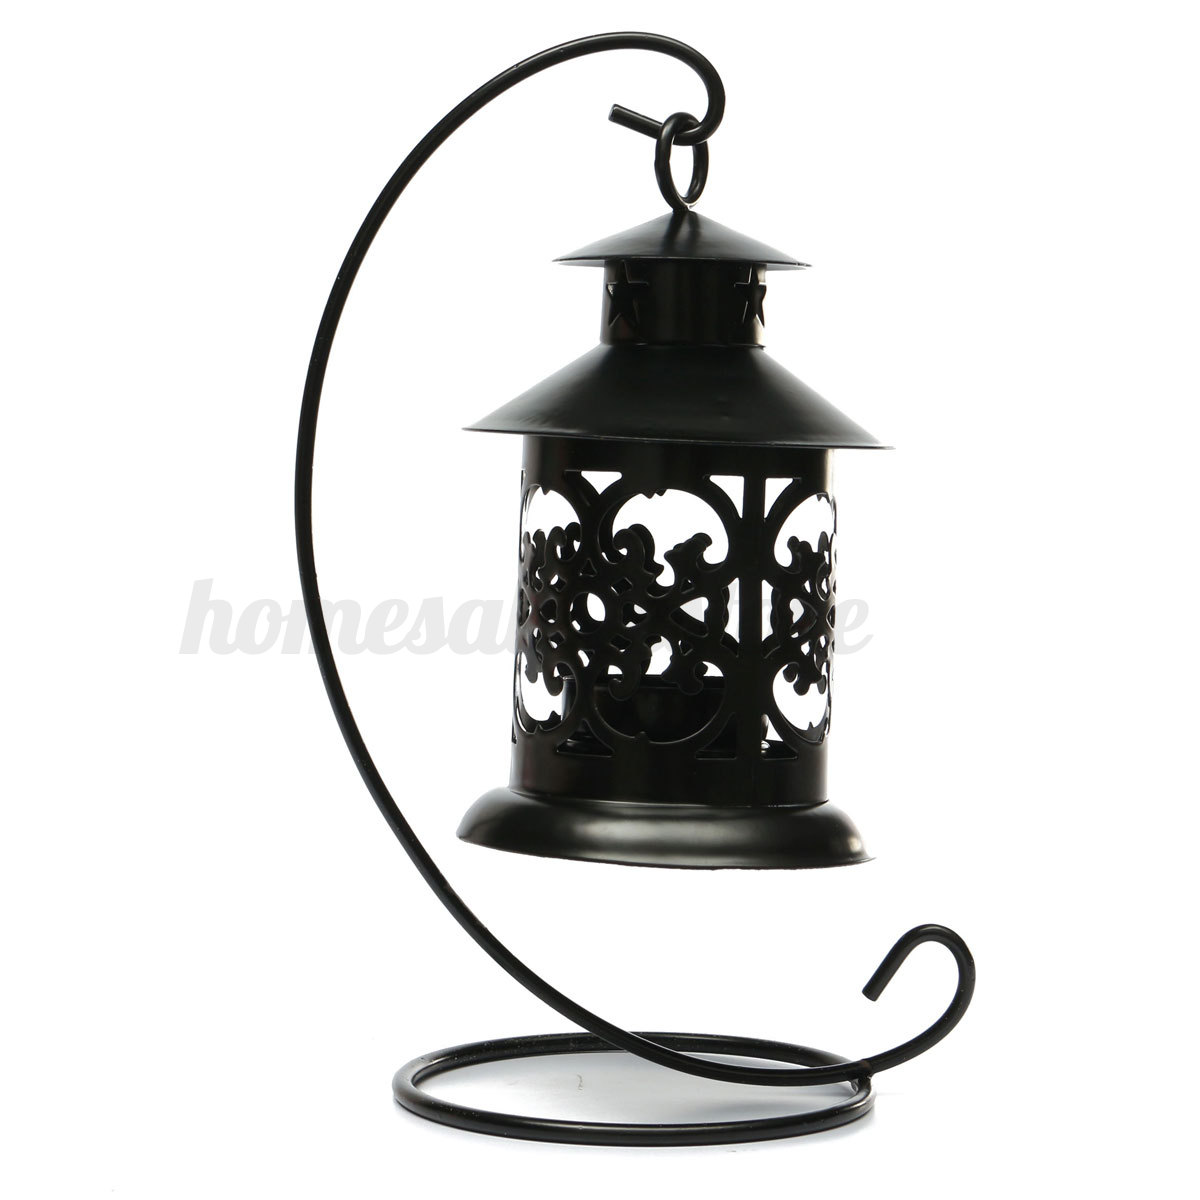 Black / White Iron Moroccan Candlestick Candleholder Candle Stand Light Lantern